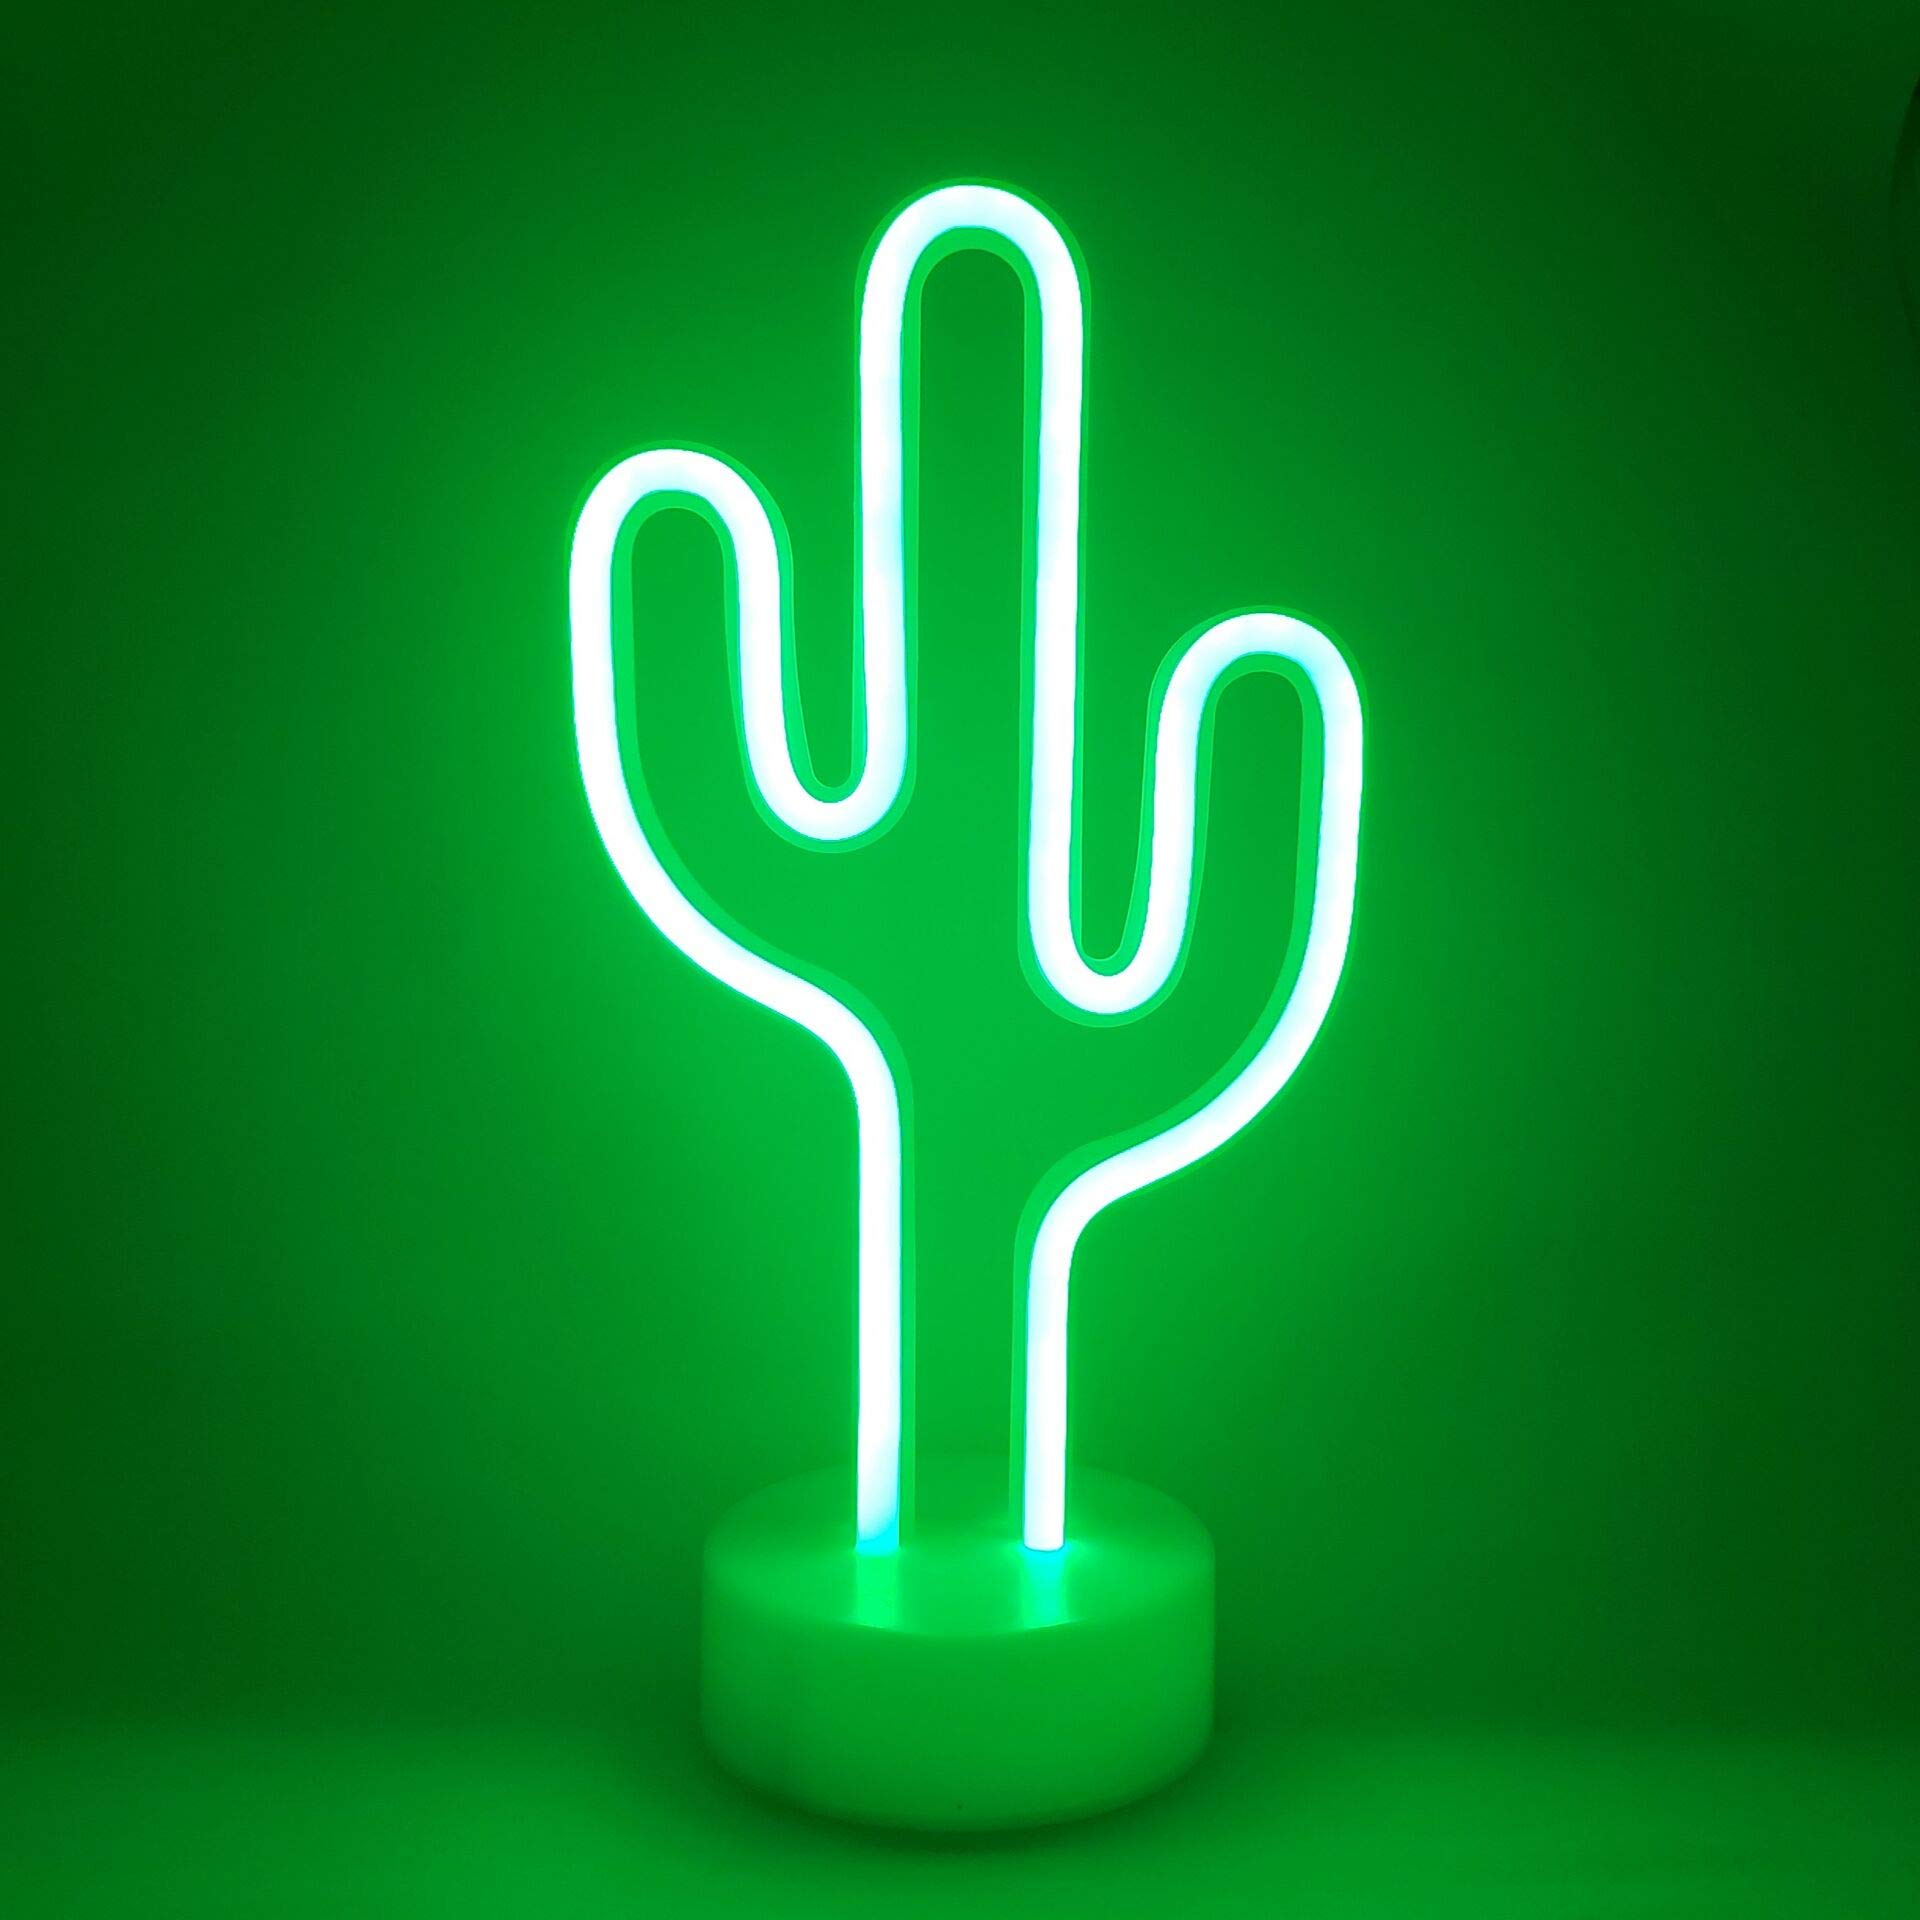 Led Neon Lights, LoveNite Cactus Shape Sign Indoor Decorative Glowing Night Light USB/Battery Operated for Wall Decor Home Party Festival Decoration Kid Baby Living Room (Green Cactus)